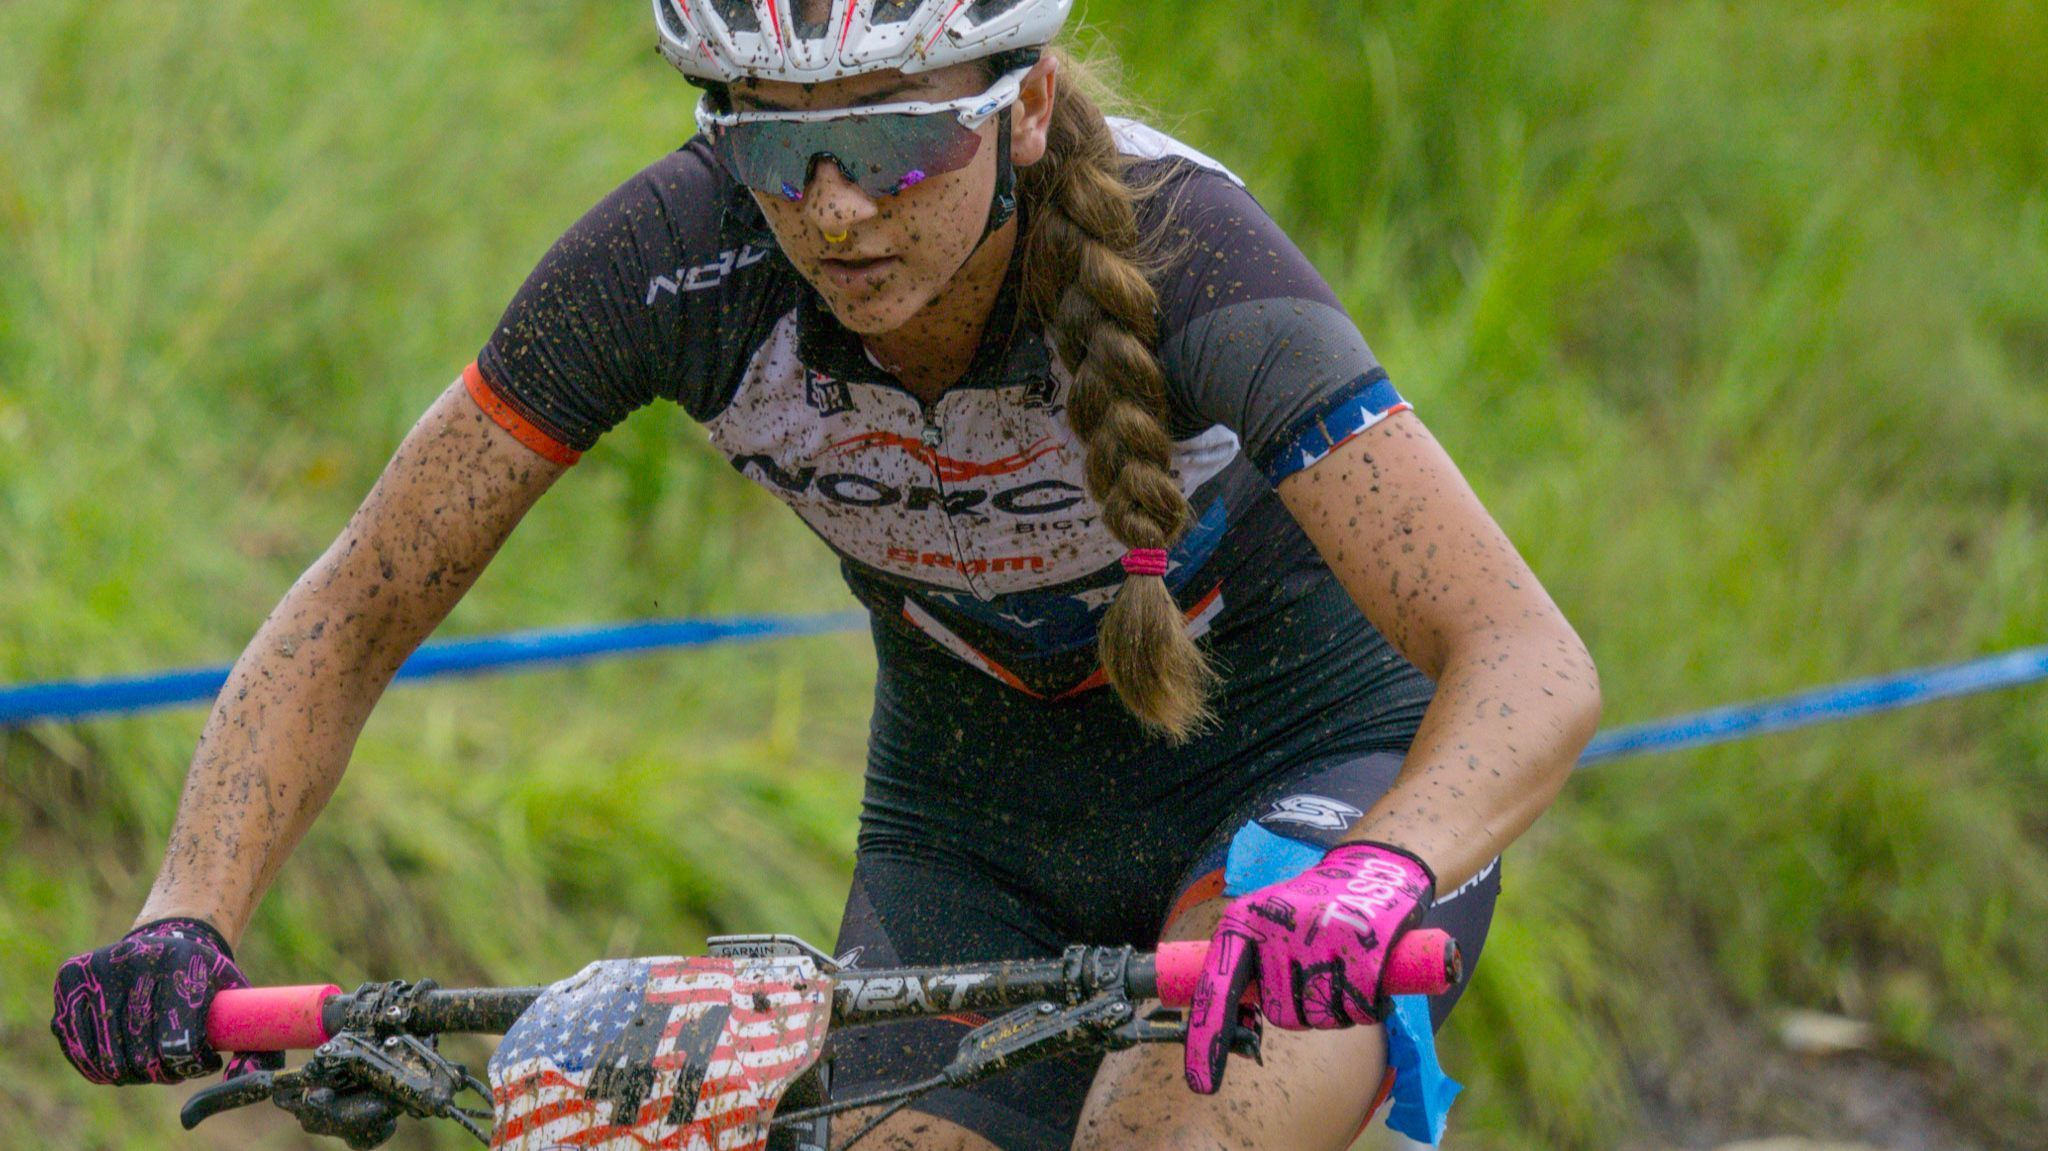 Gwendalyn gibson races through a course full of obstacles.